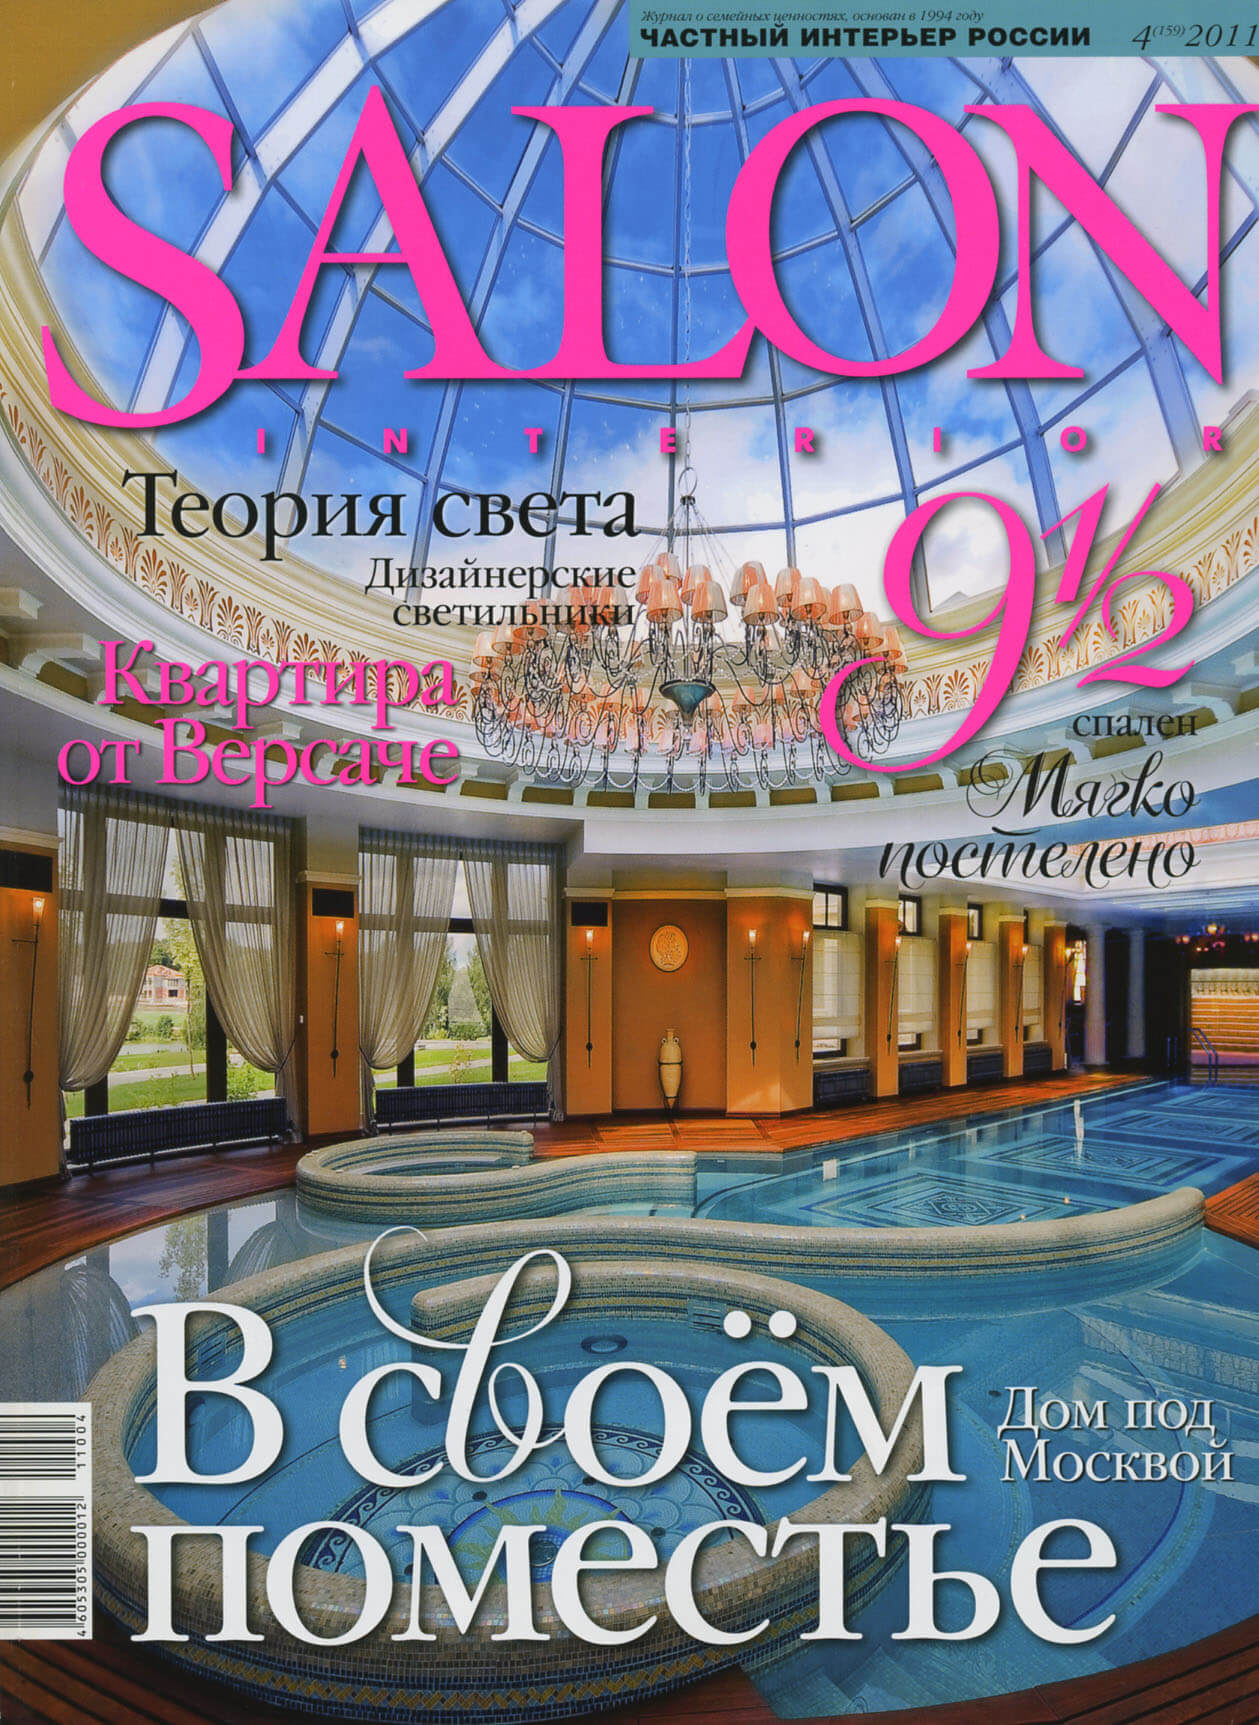 Salon 4 (159) 2011